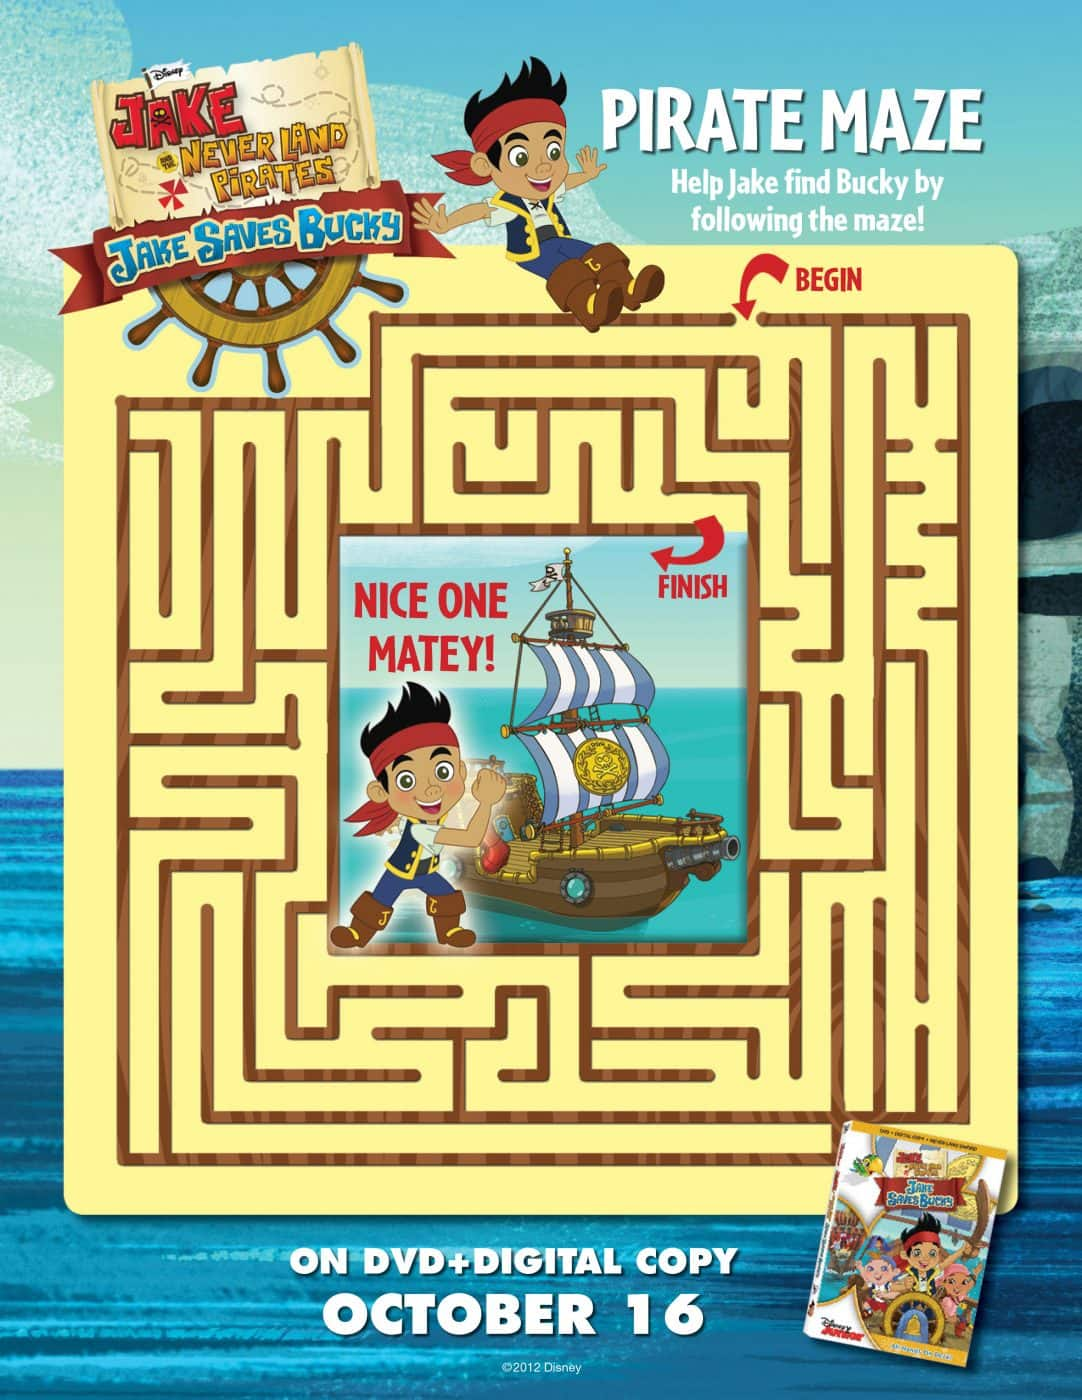 jake and the pirates never land pirates printables